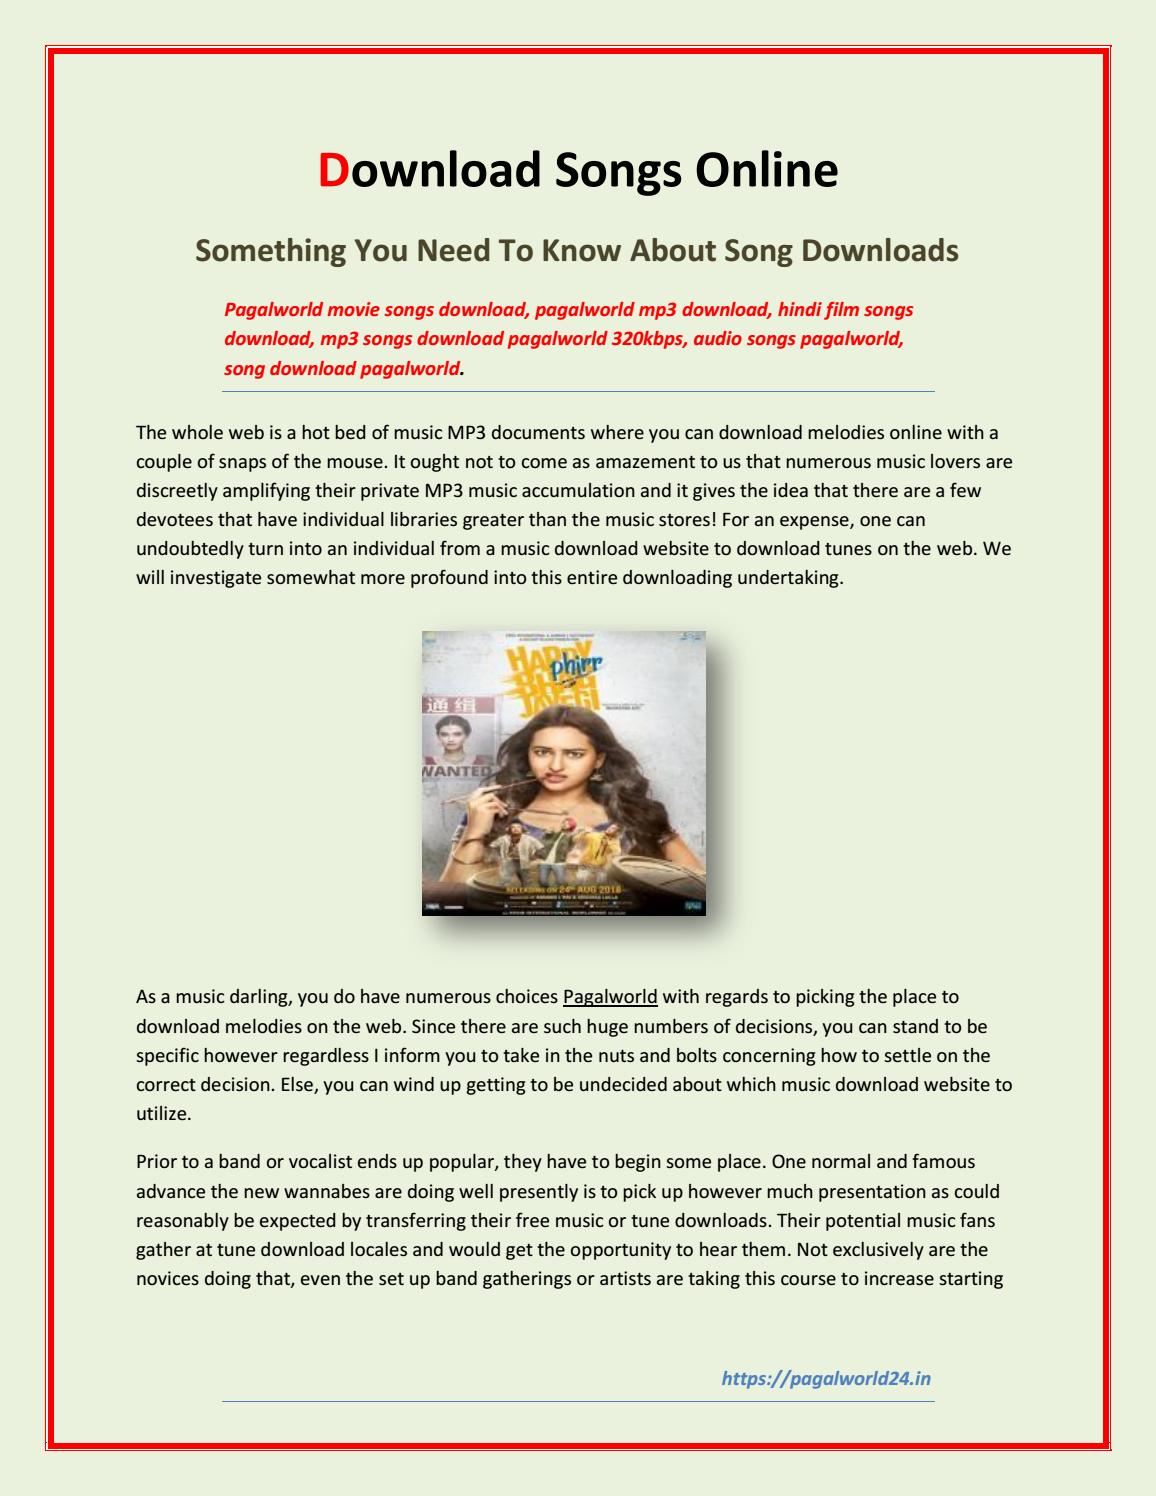 Download Songs Online - Something You Need To Know About